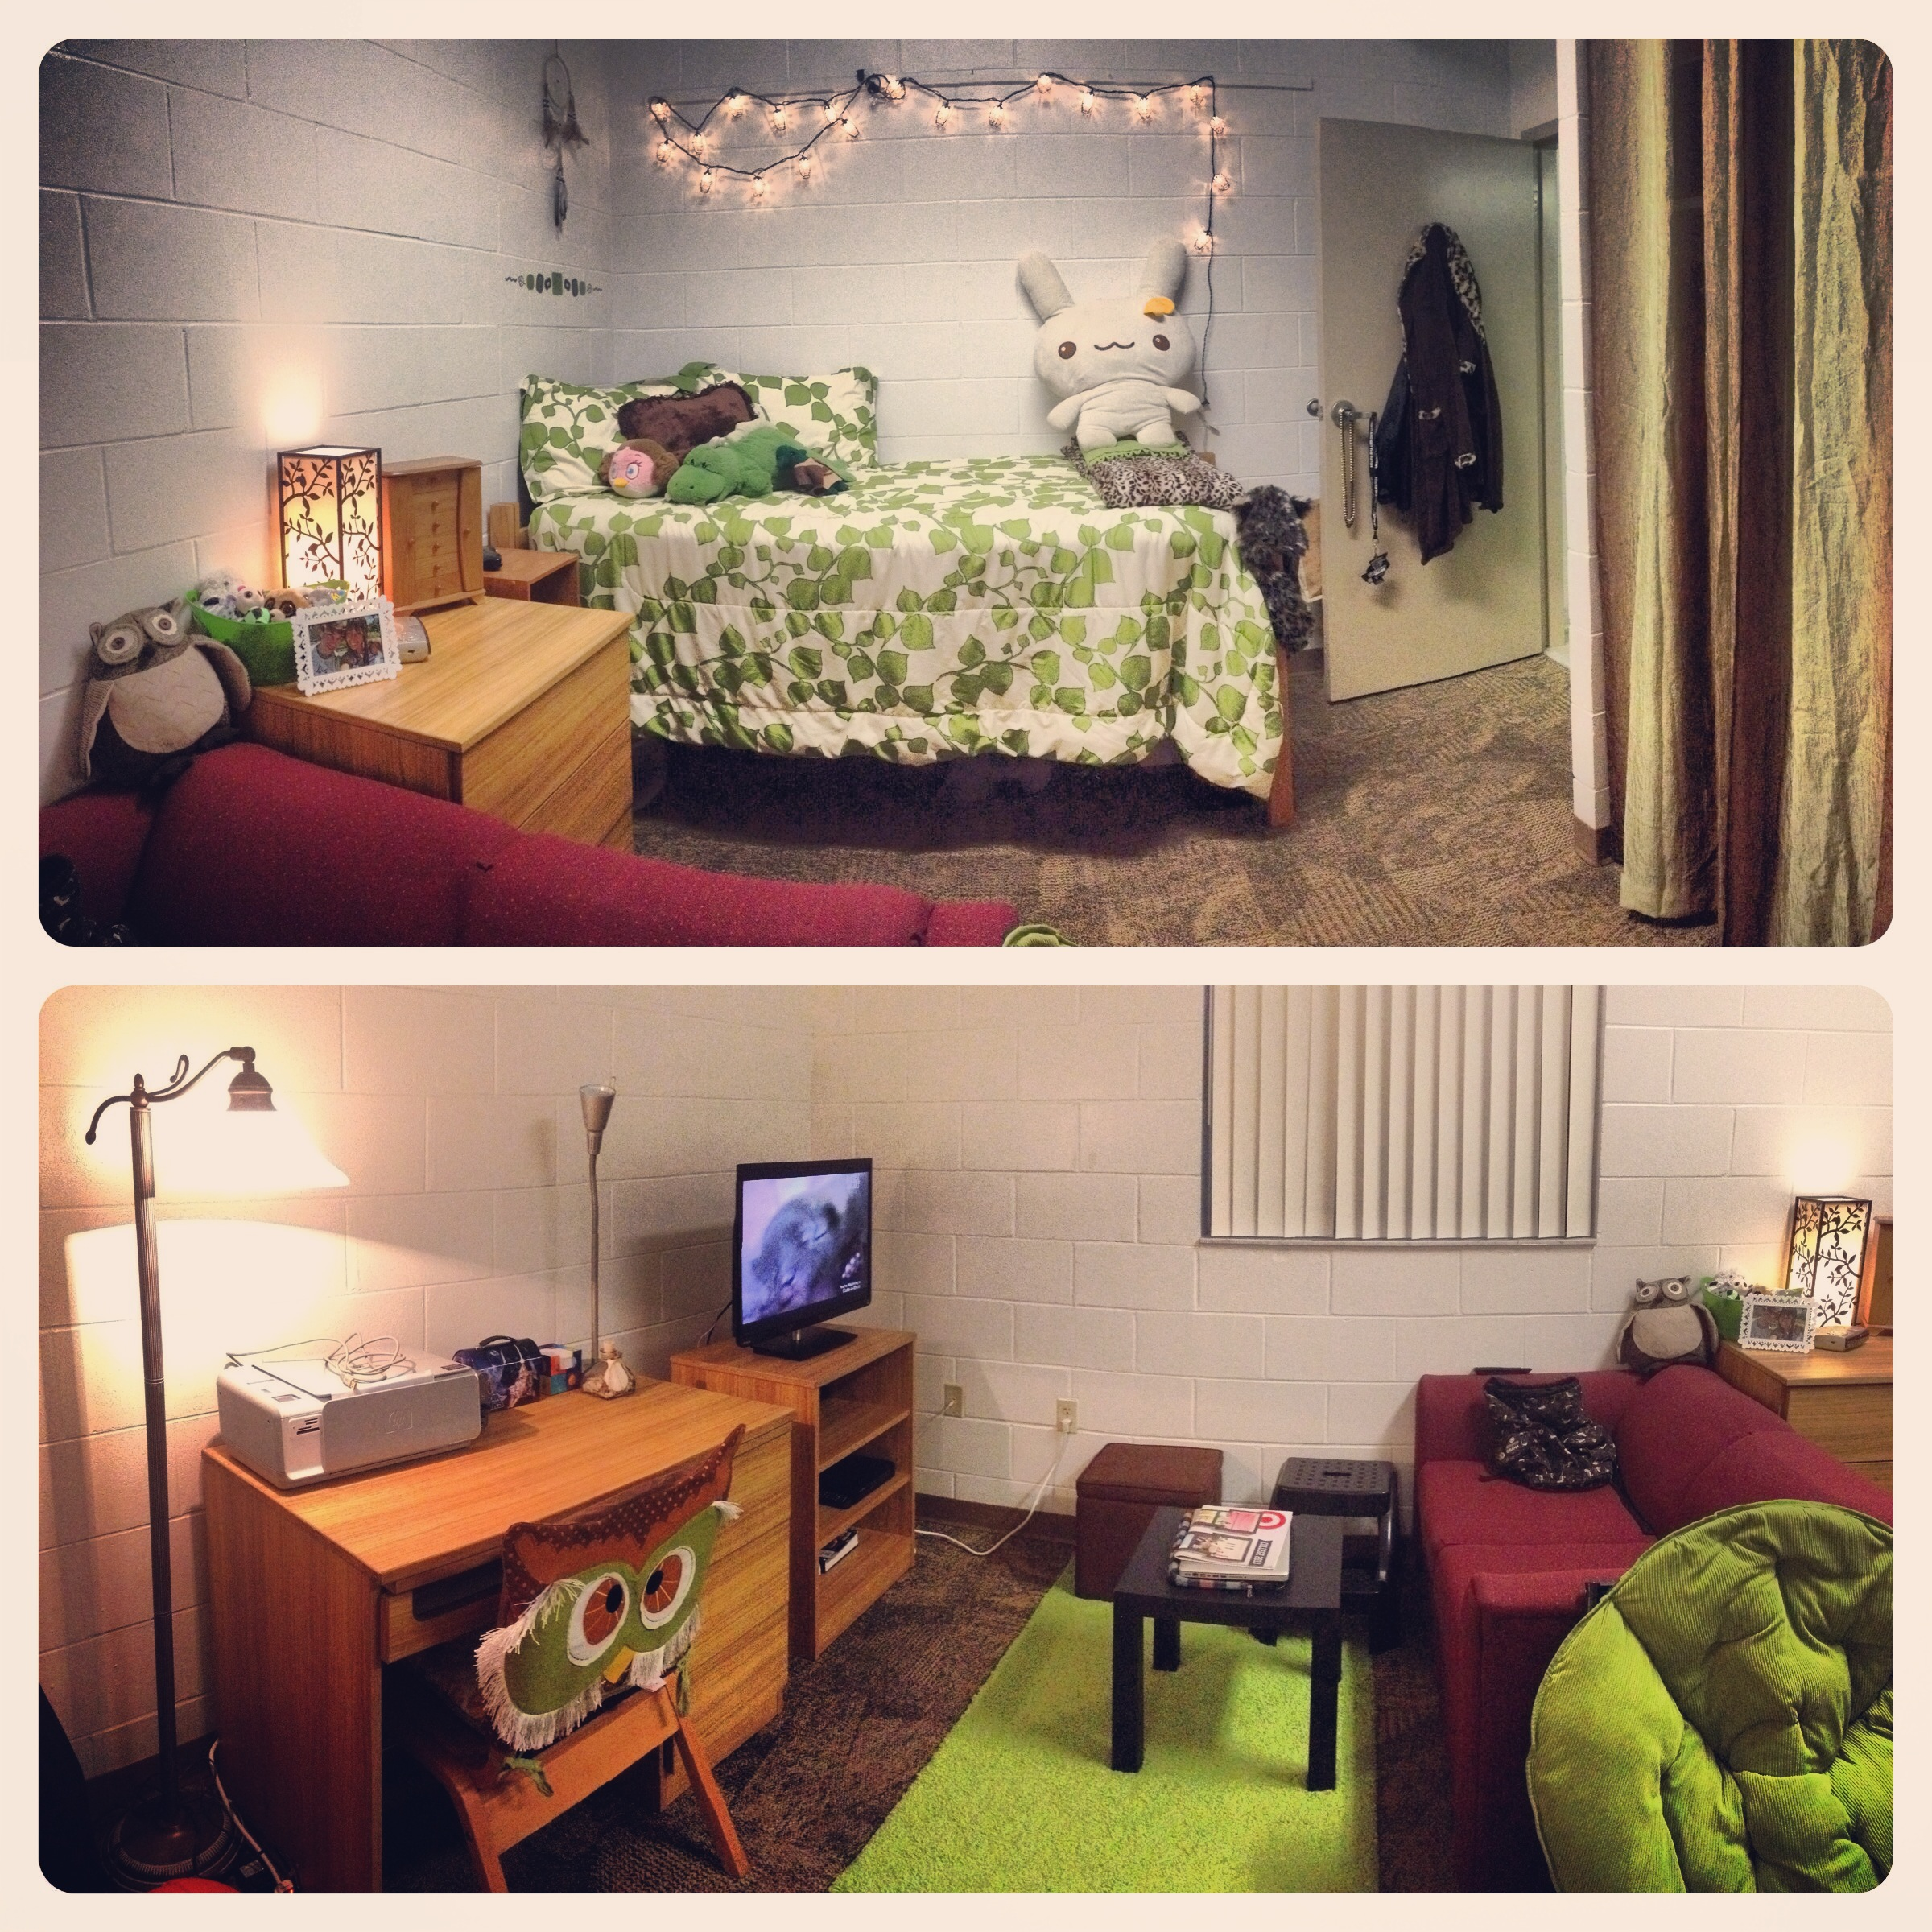 This was my second RA room. It was similar to a studio apartment with its own bathroom and kitchen.